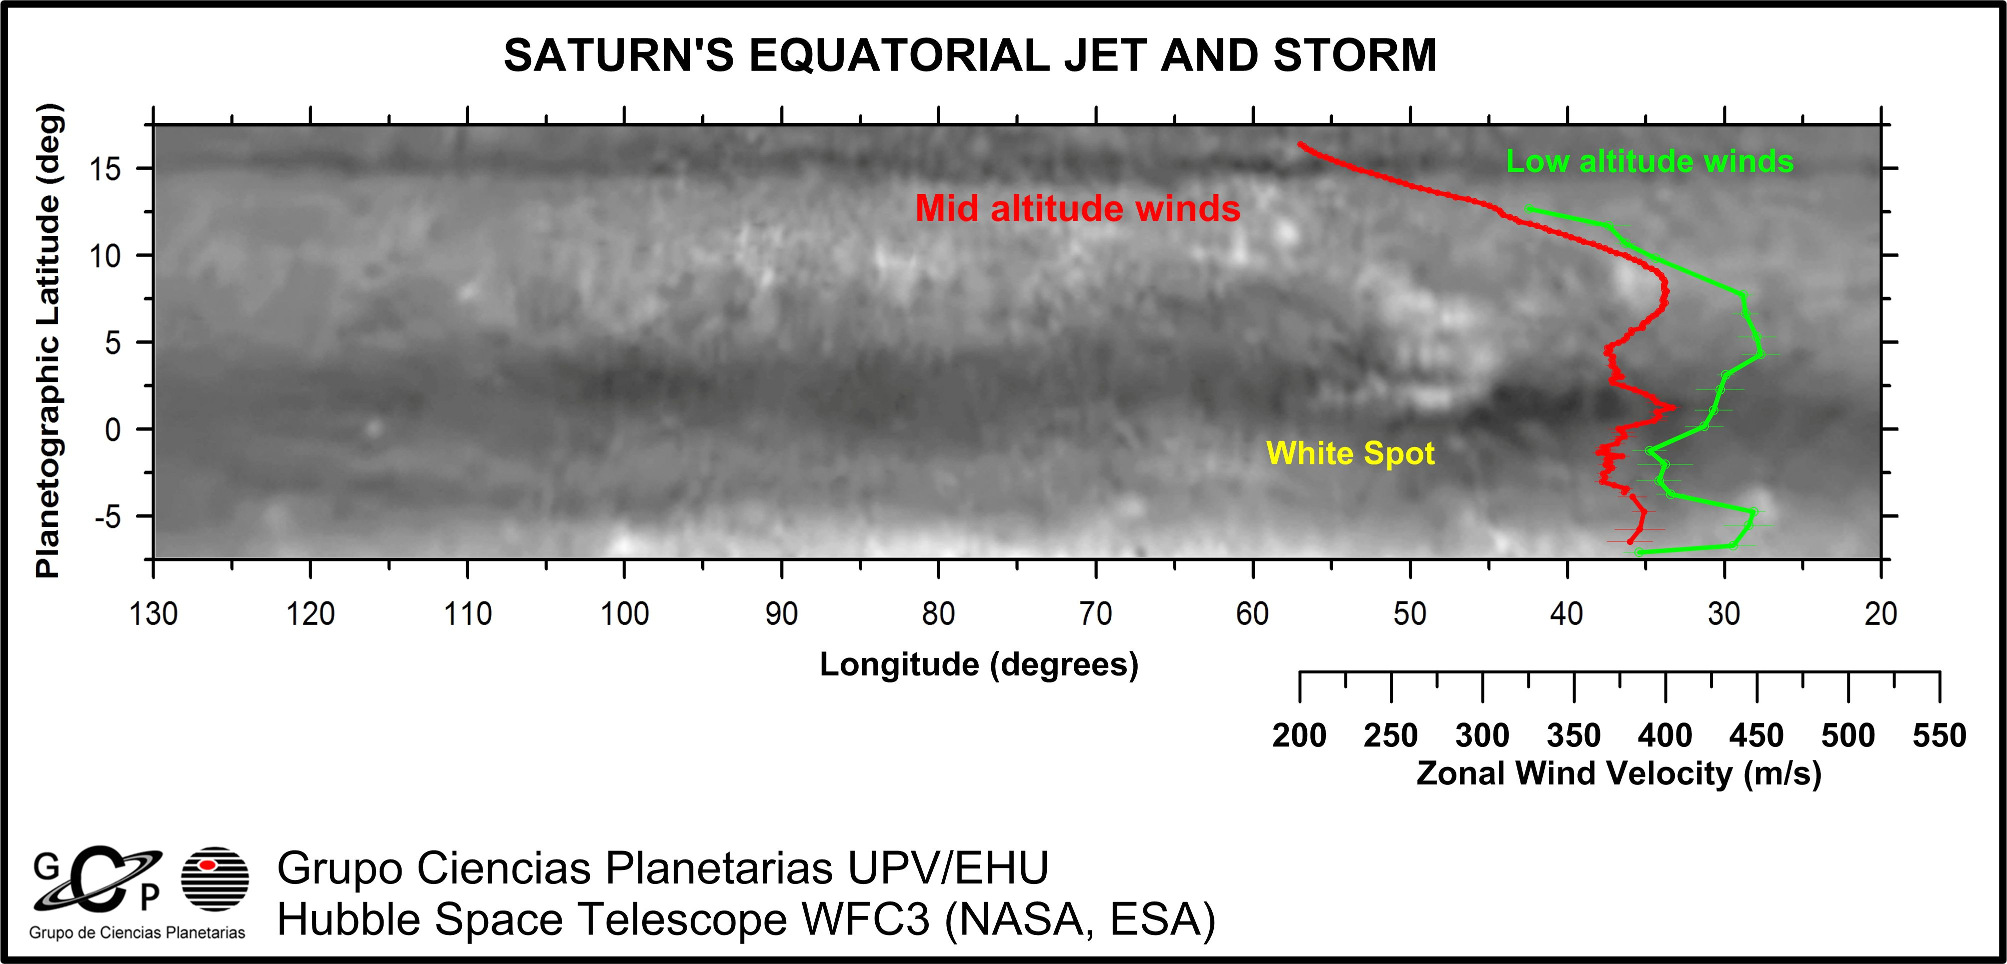 Map of Saturn's equator showing its cloud formations and equatorial storm (White Spot). Superimposed can be seen the profiles of the winds at two altitudes separated by about 50 kilometres (30 miles), deep ones (green outline) and middle ones (red outline).